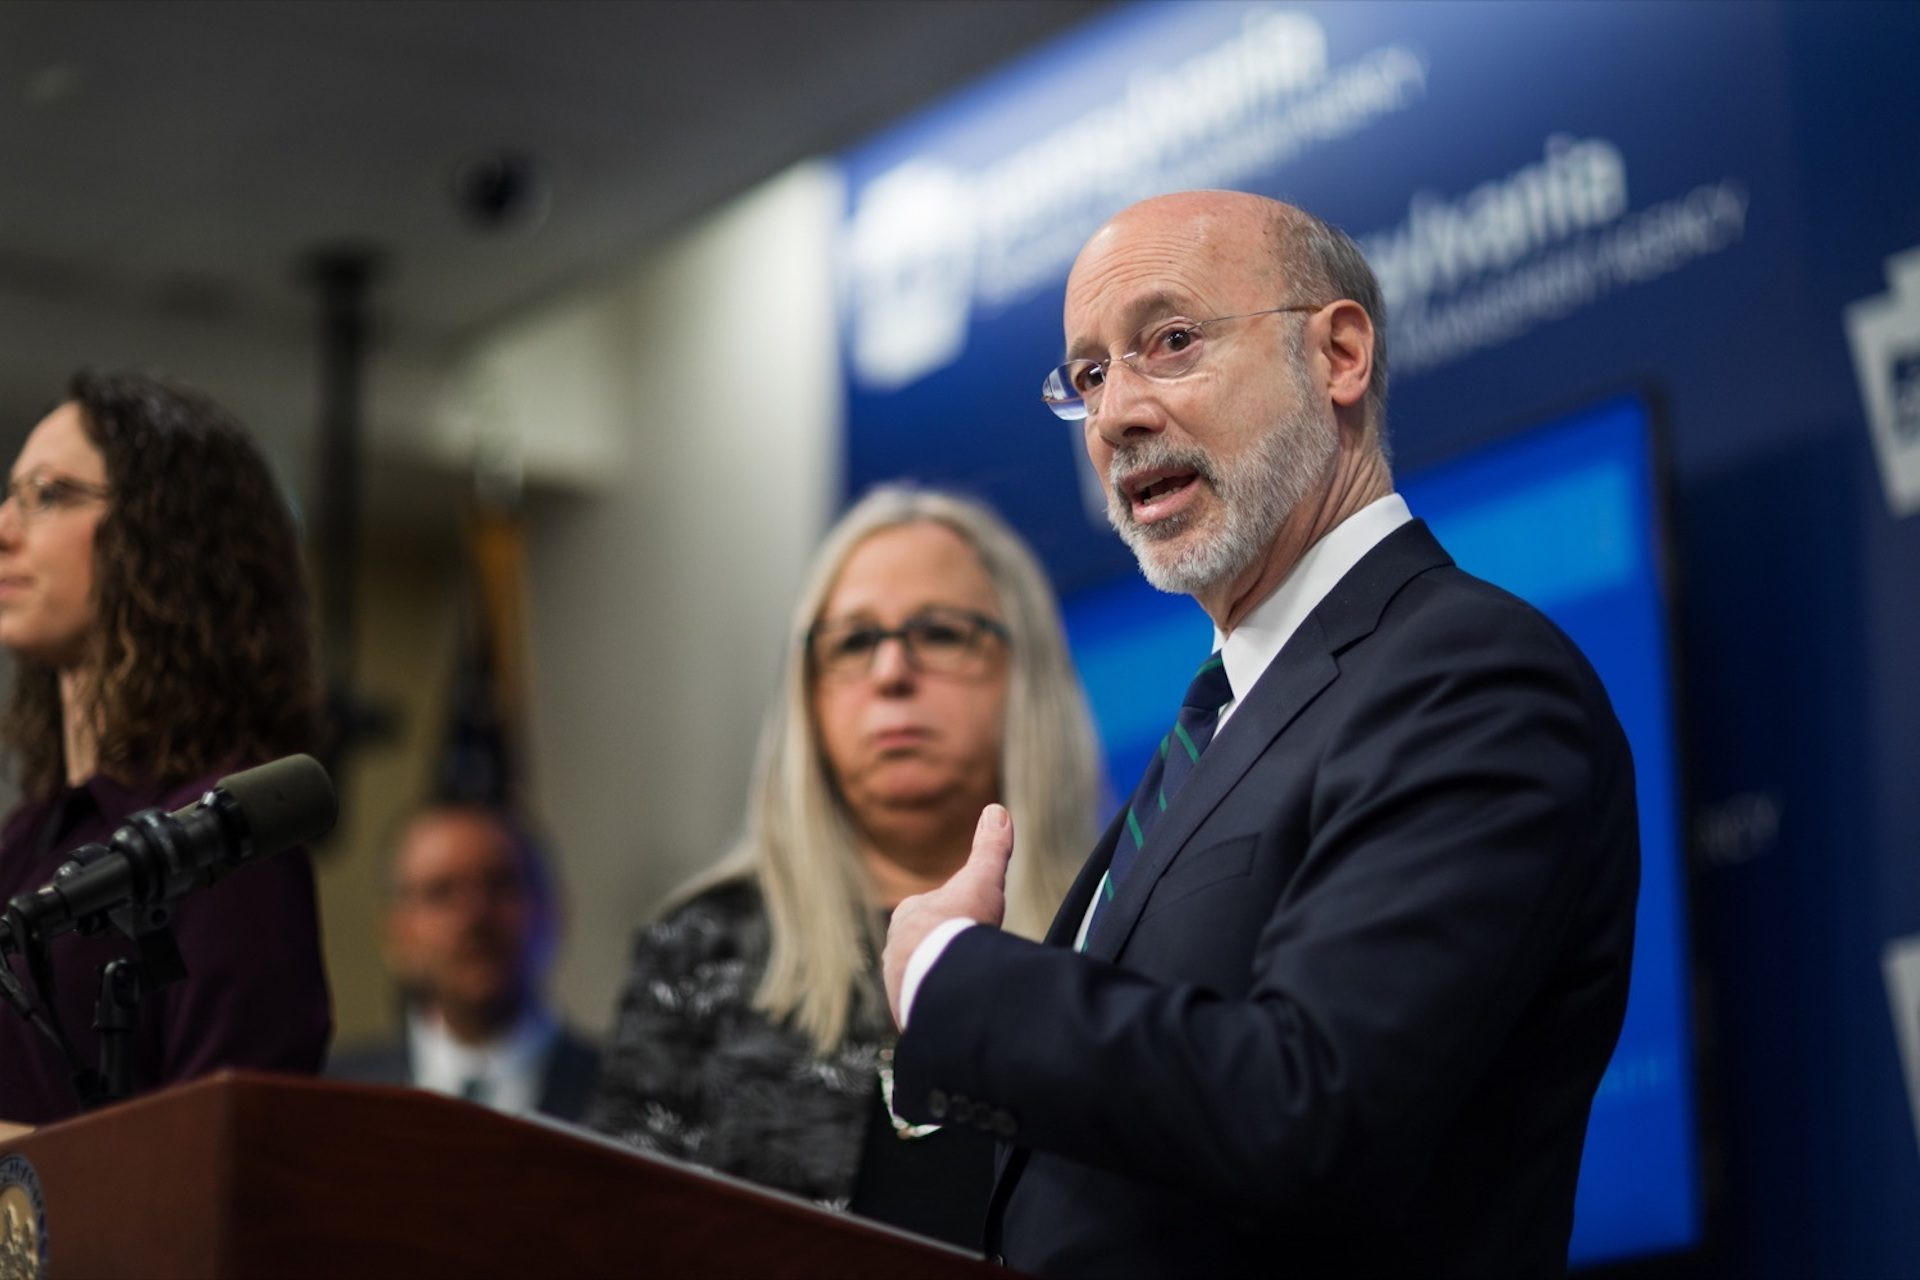 Gov. Tom Wolf speaks during a press conference inside PEMA headquarters on Wednesday, March 4, 2020.